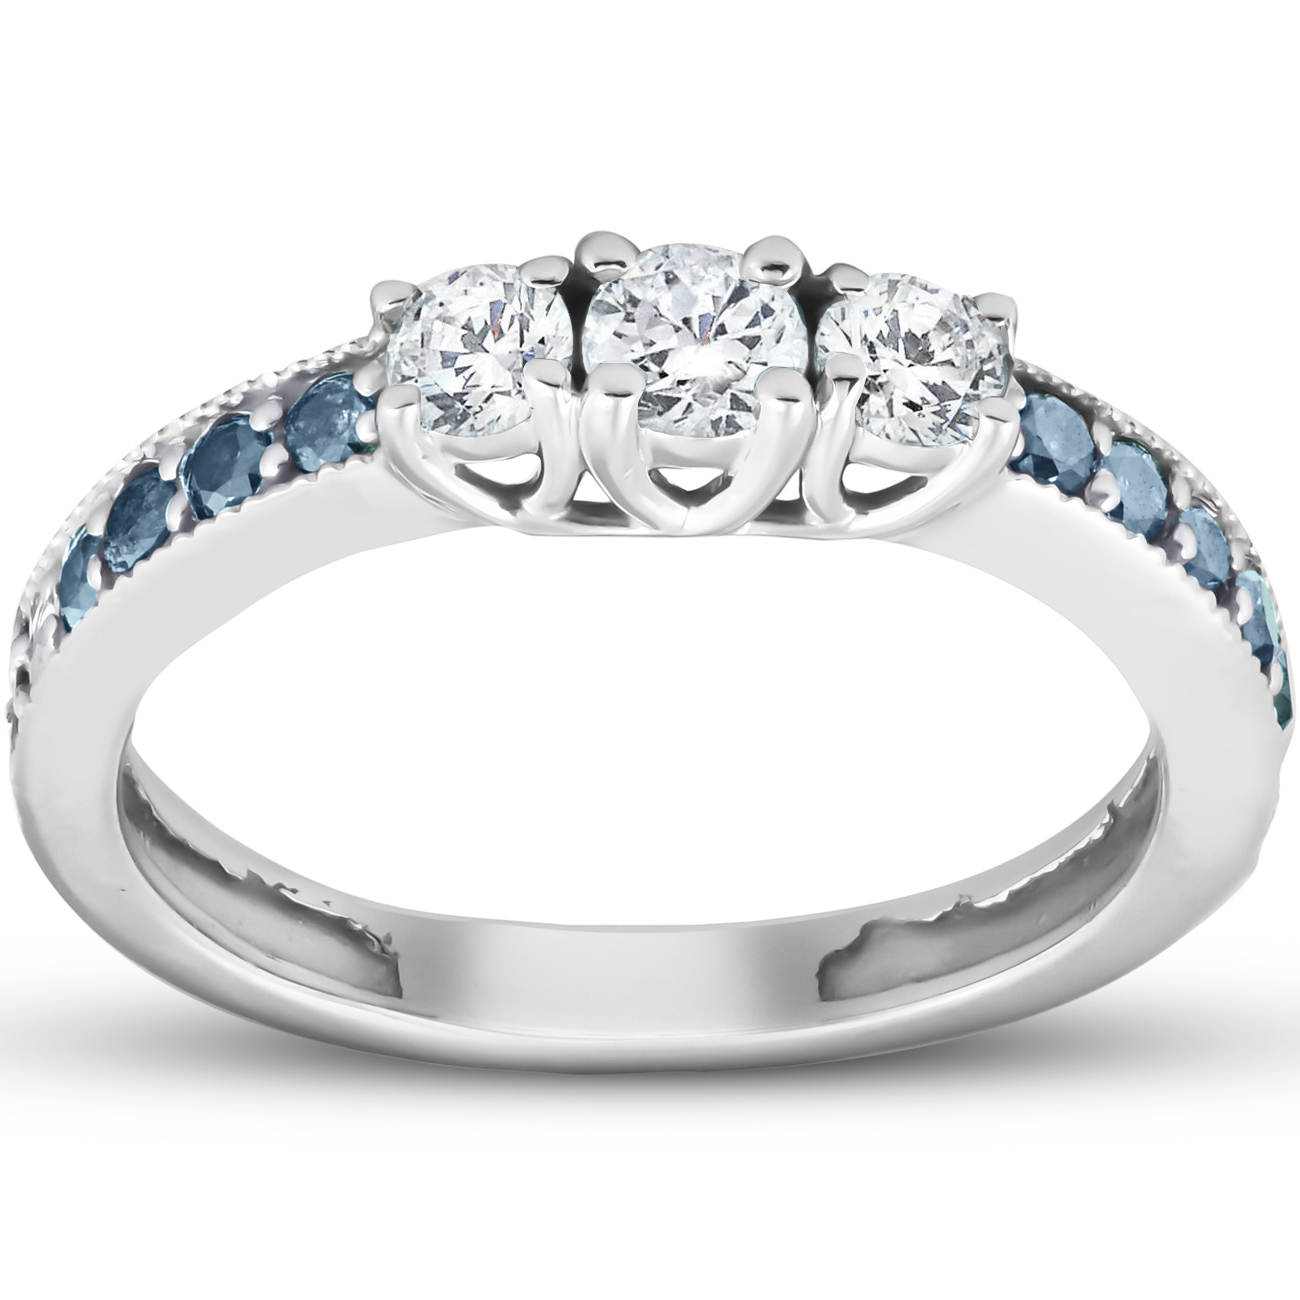 Details About 1/2 Ct Blue & White Diamond Three Stone Engagement  Anniversary Ring White Gold In 2020 Enhanced Blue And White Diamond Anniversary Bands In White Gold (Gallery 2 of 25)